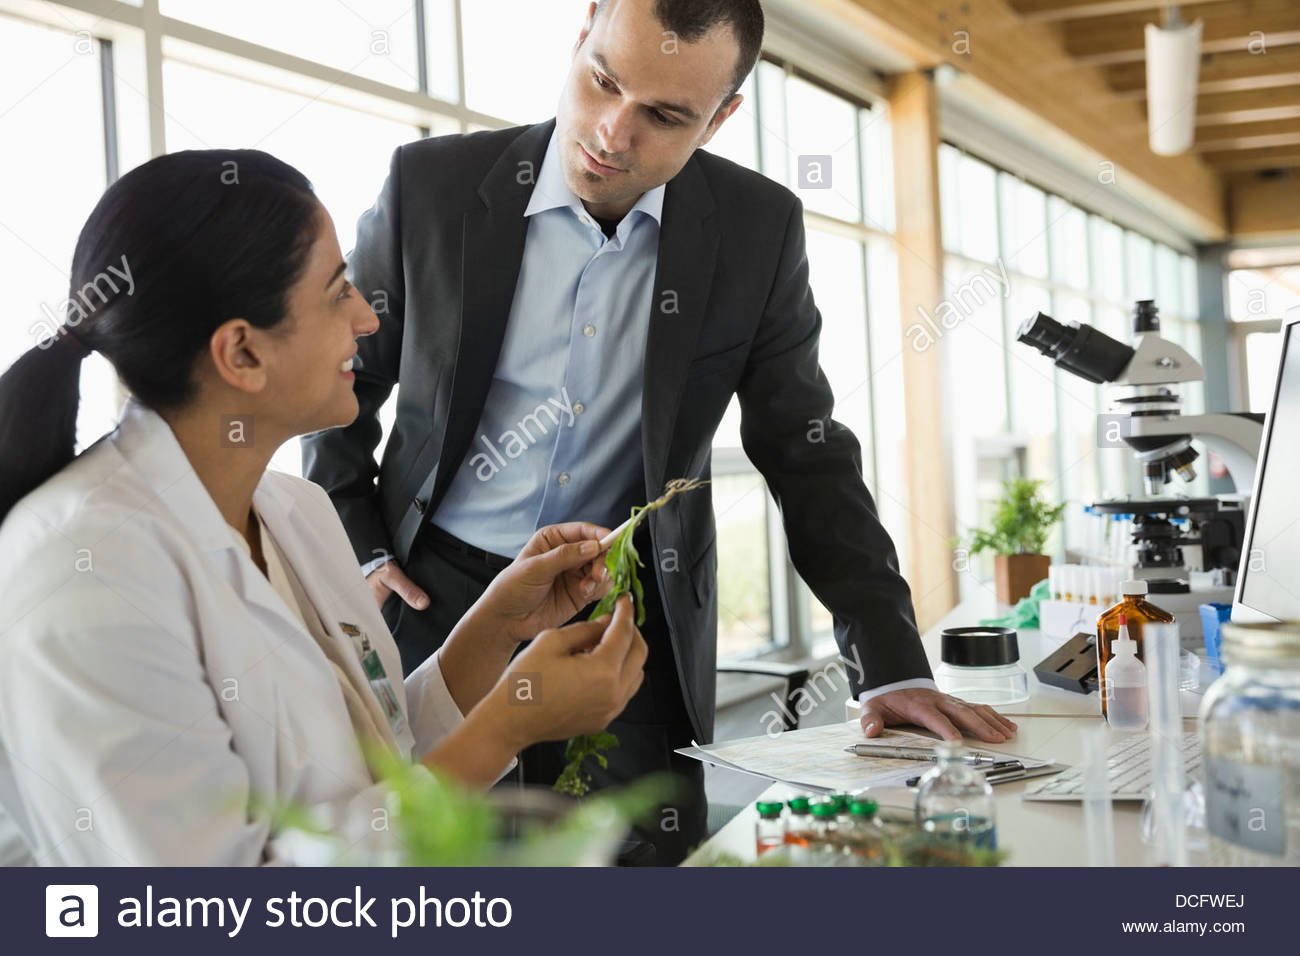 Businessman discuter avec le botaniste in laboratory Photo Stock